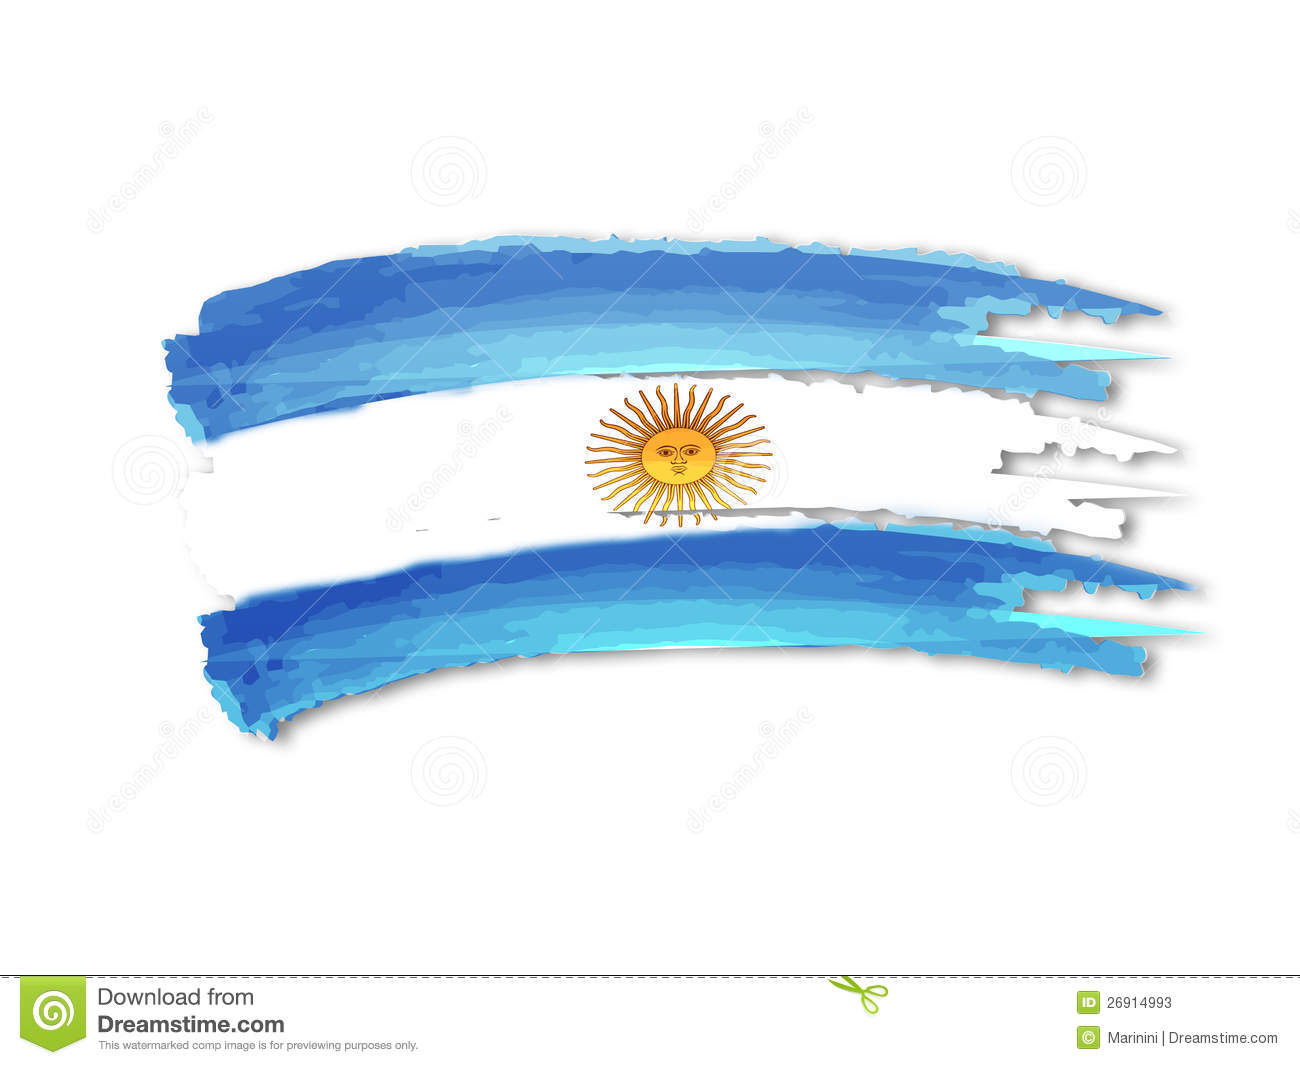 Argentine Flag Drawing Stock Photos - Image: 26914993